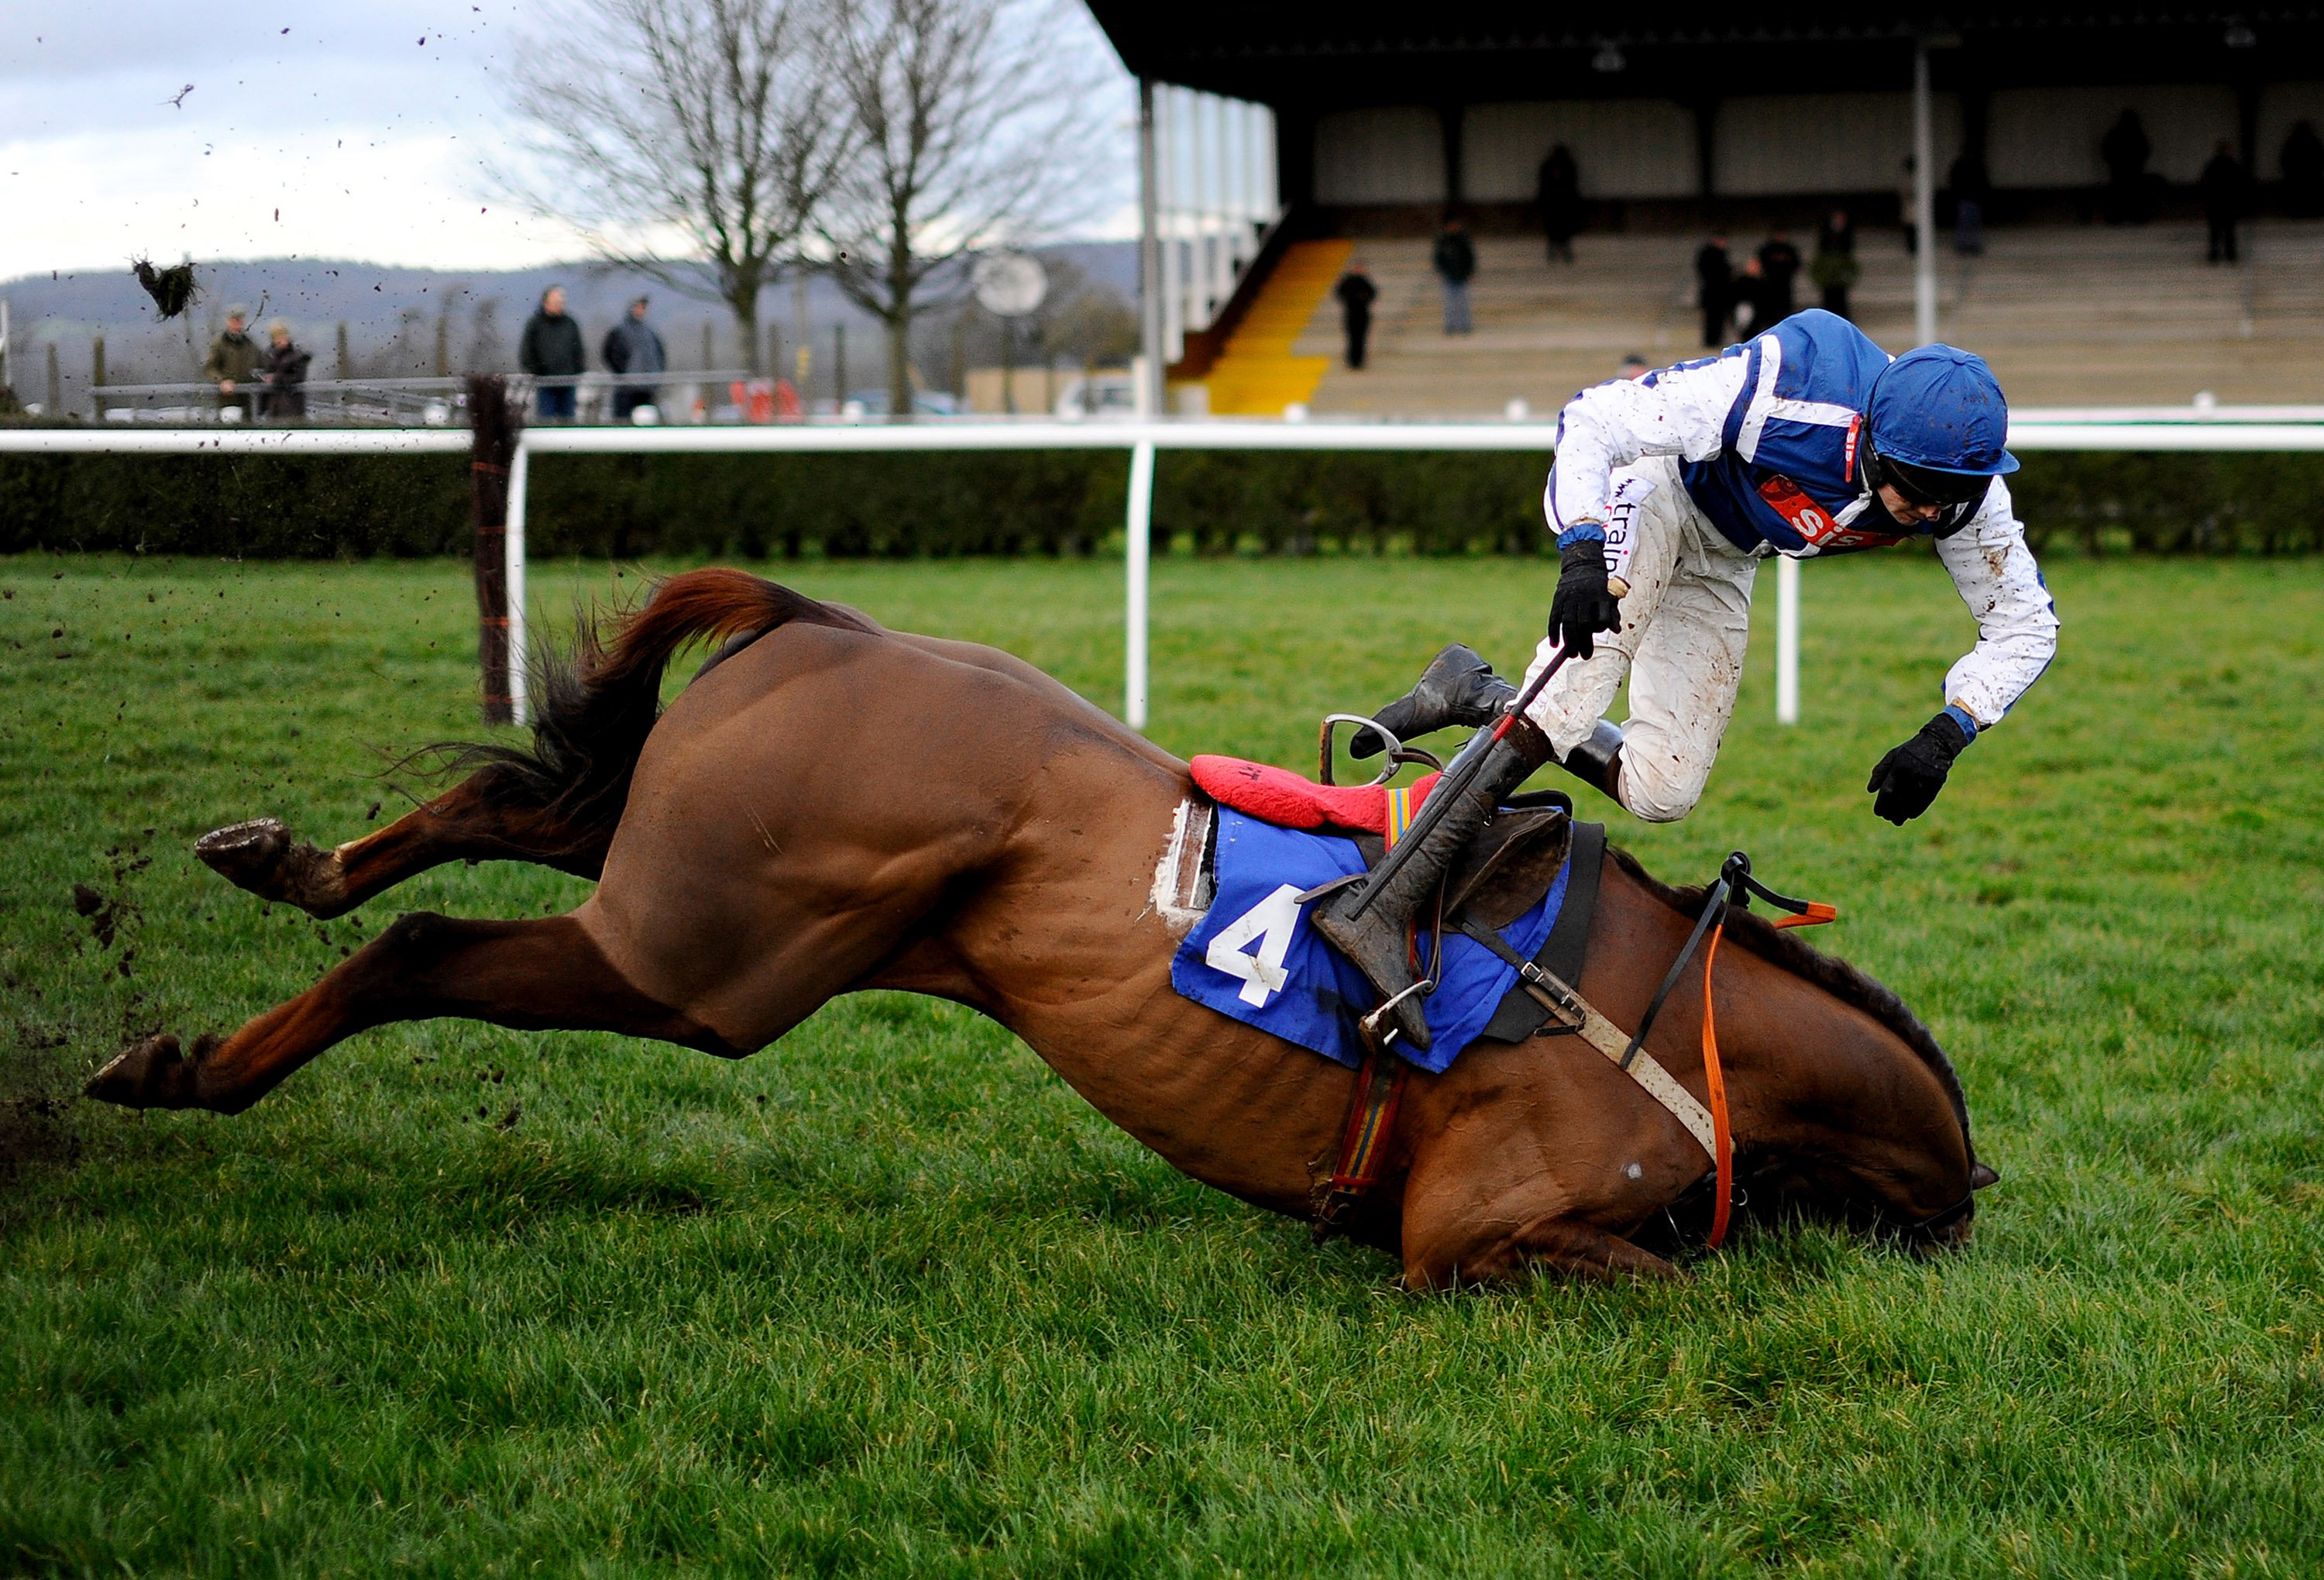 Brendan Powell falls from Flaming Charmer in the Higos Insurance Services Street Novices' Limited Handicap Steeple Chase in Wincanton, England, Jan. 16, 2014.